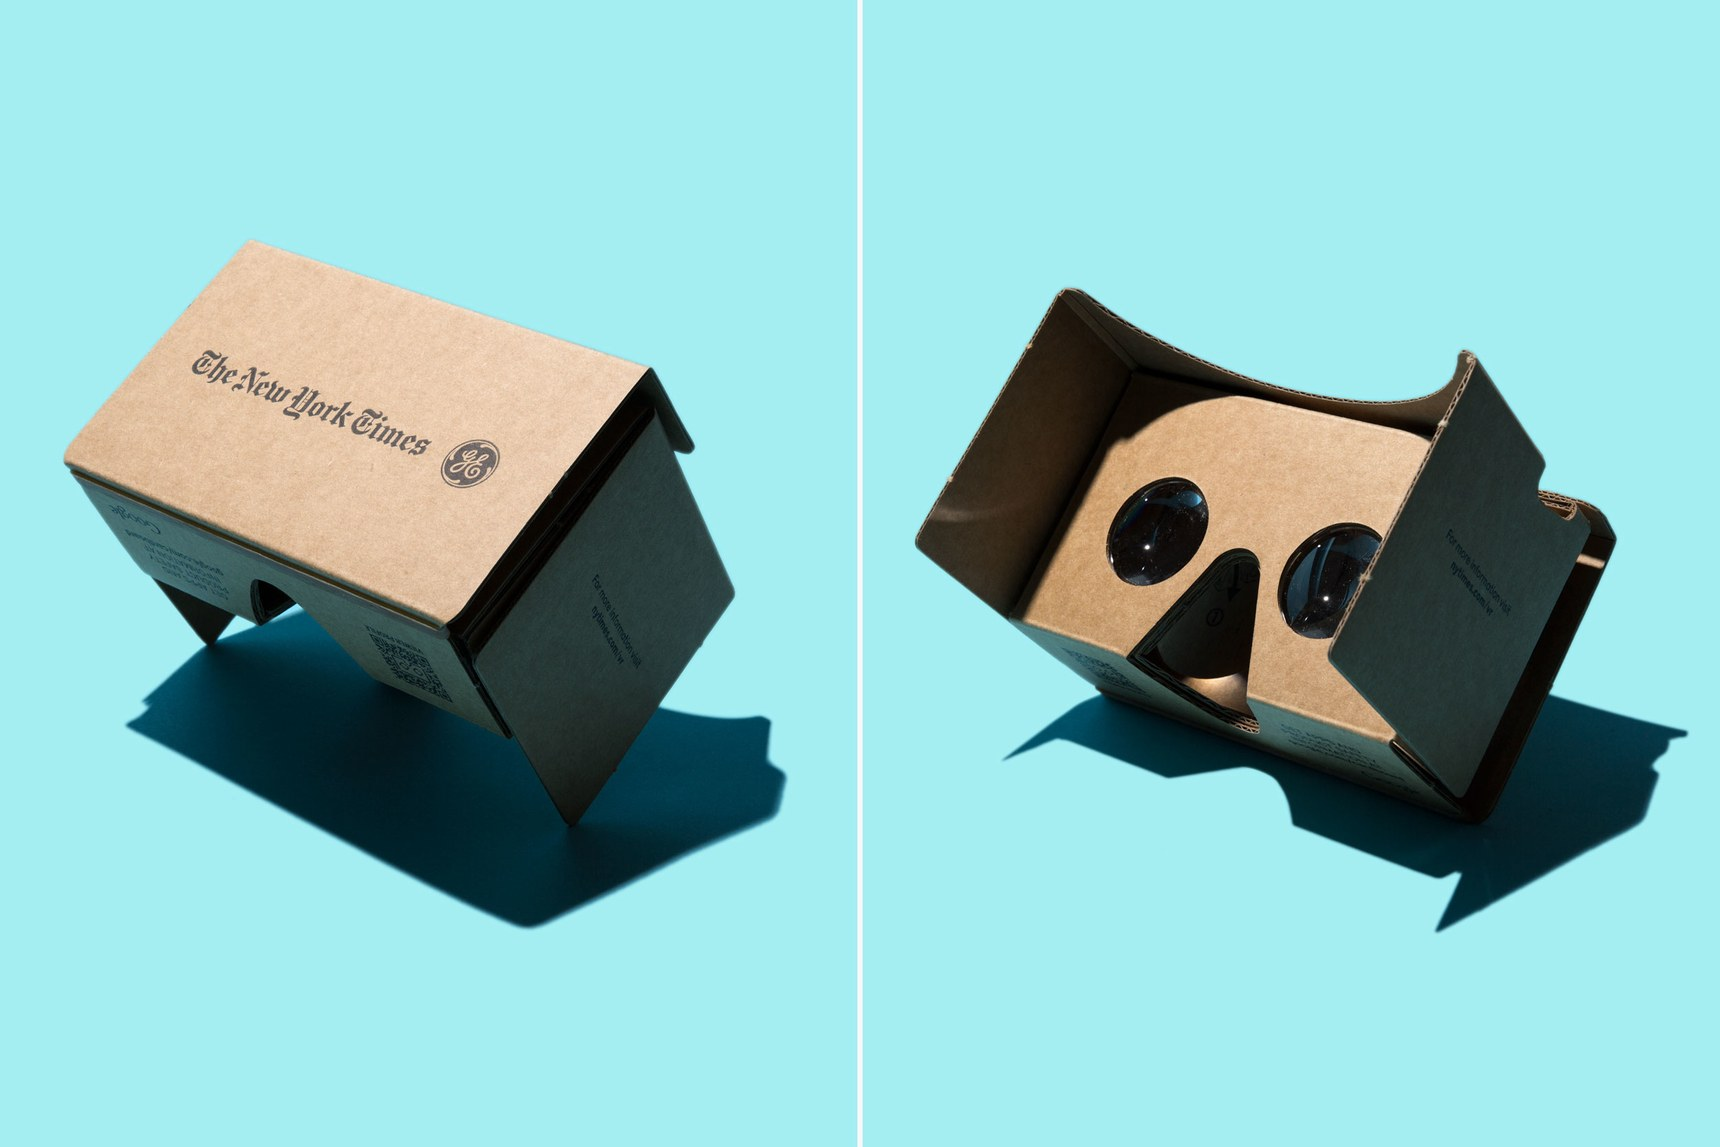 New York Times/GE Cardboard virtual reality viewer collaboration via WIRED